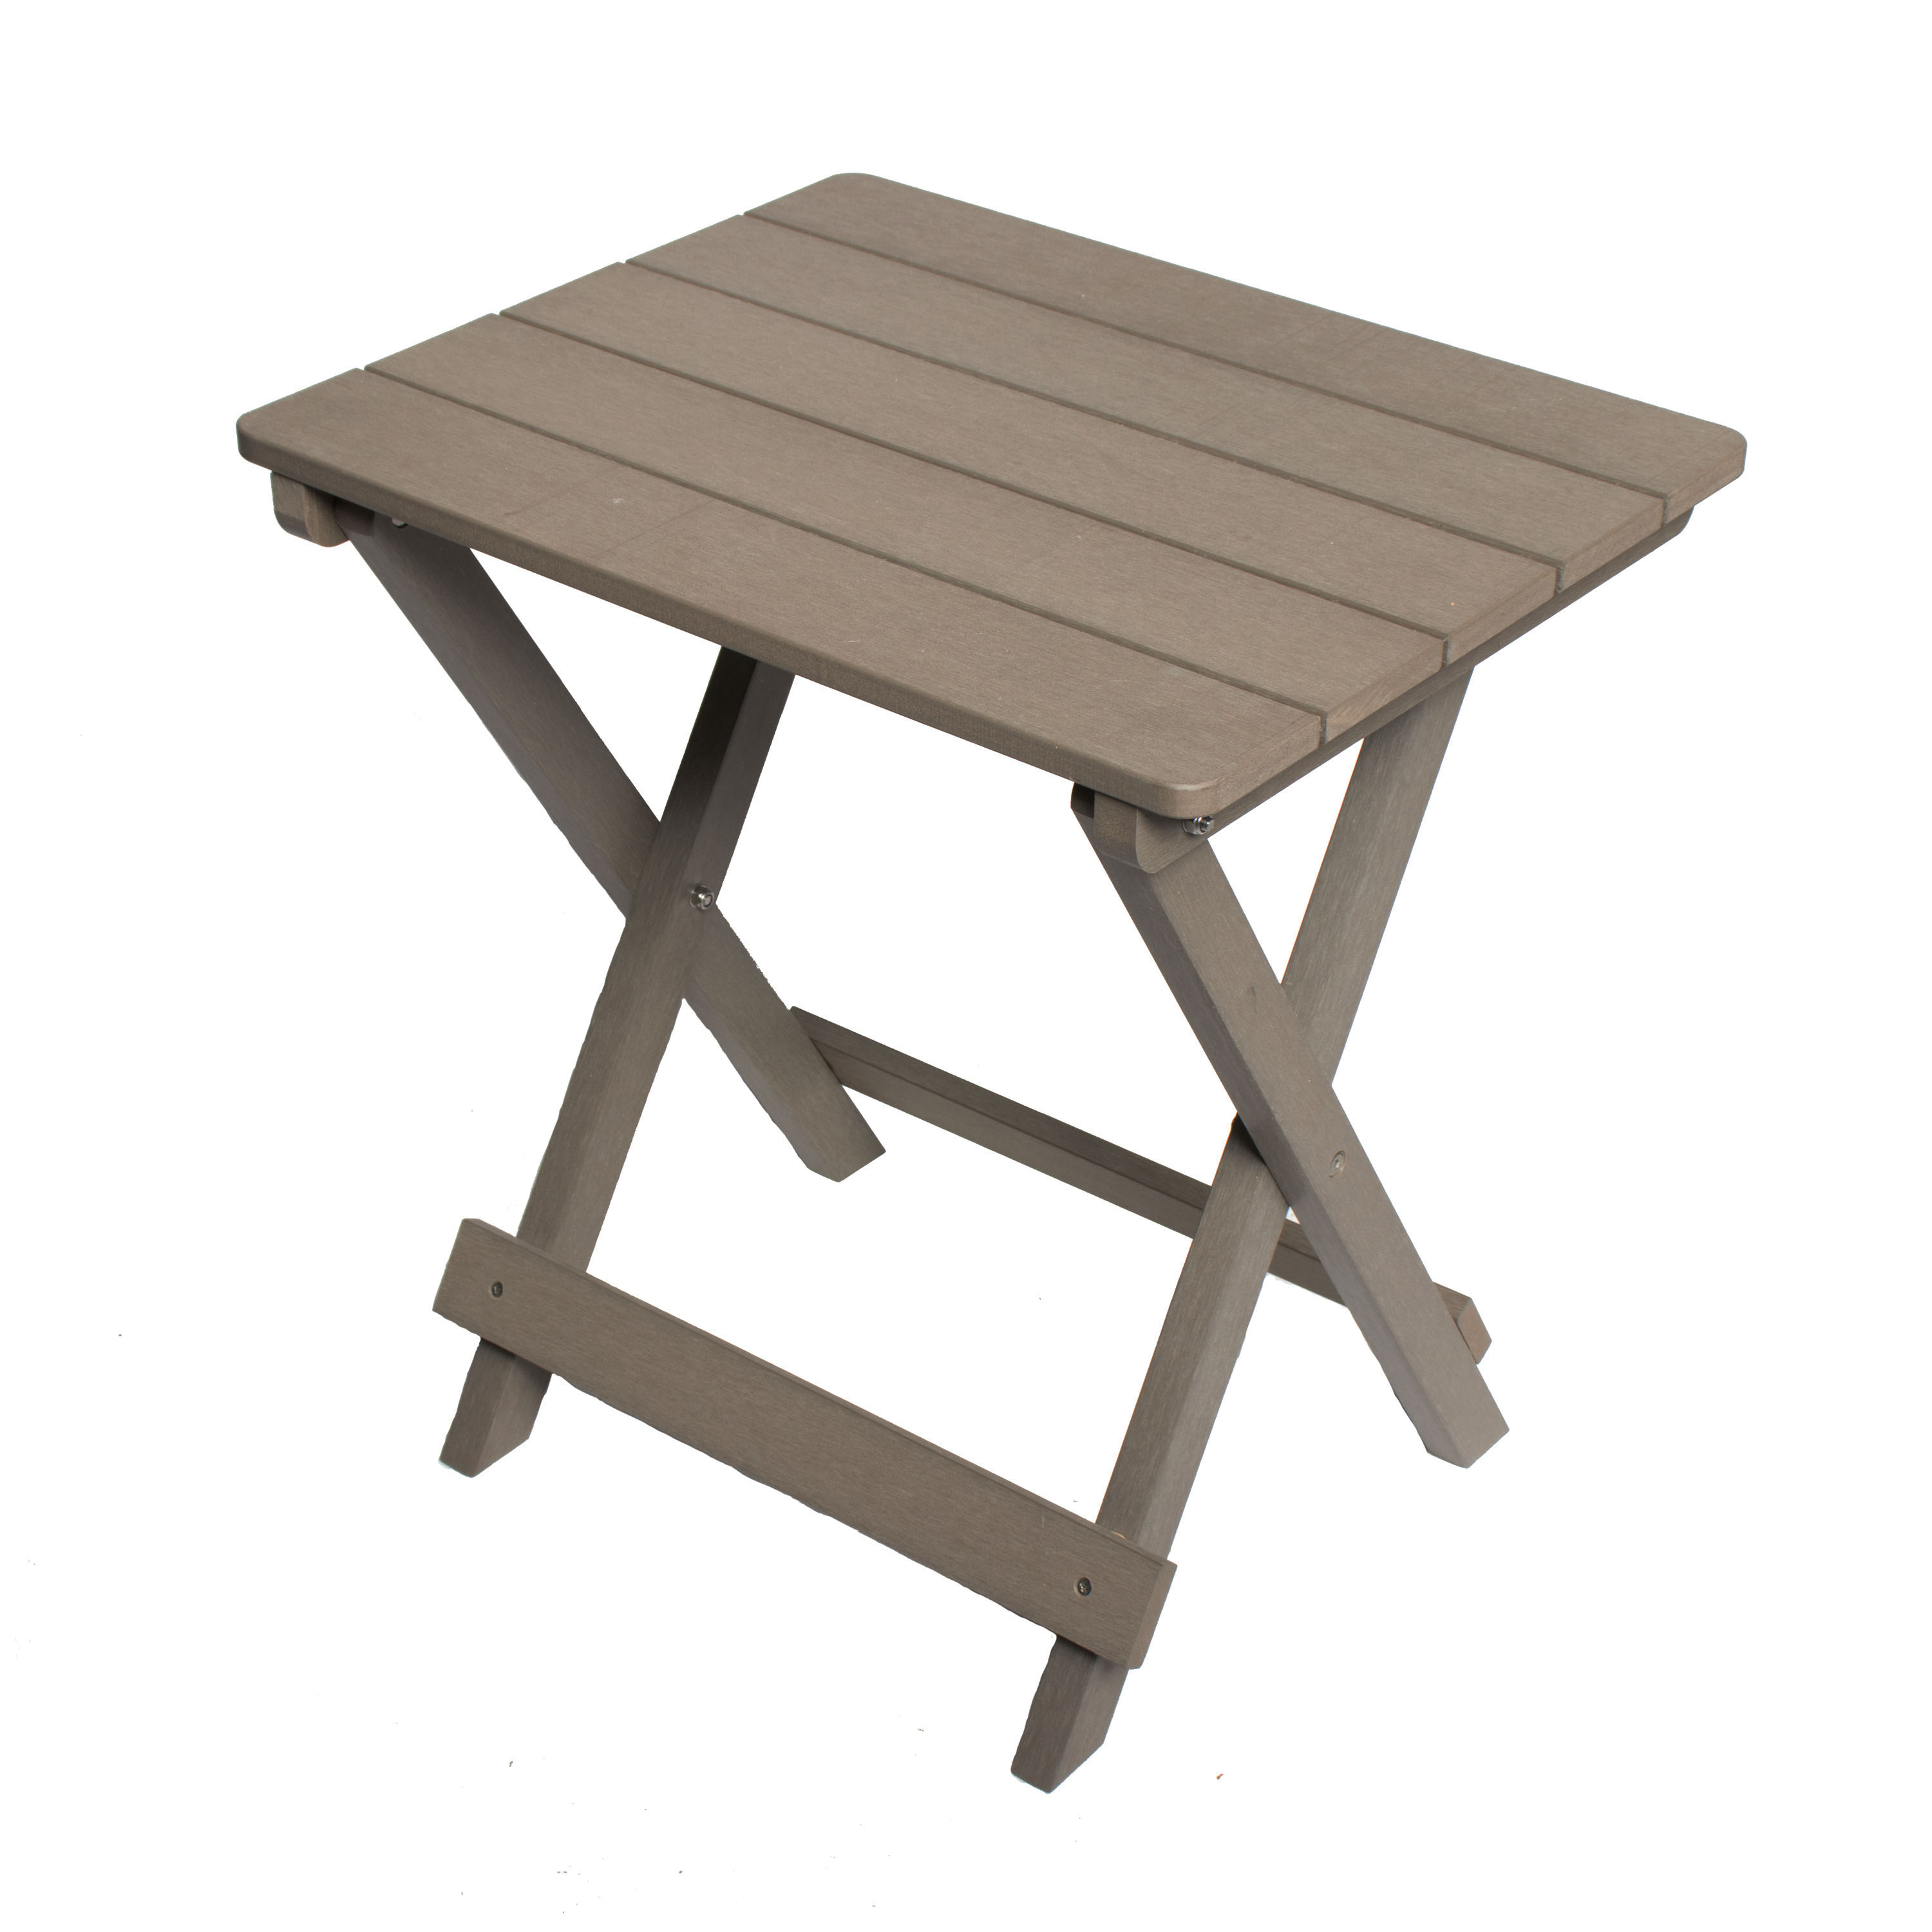 sports shoes e15a8 cde91 Composite Wood Outdoor Foldable Side Table - Grey